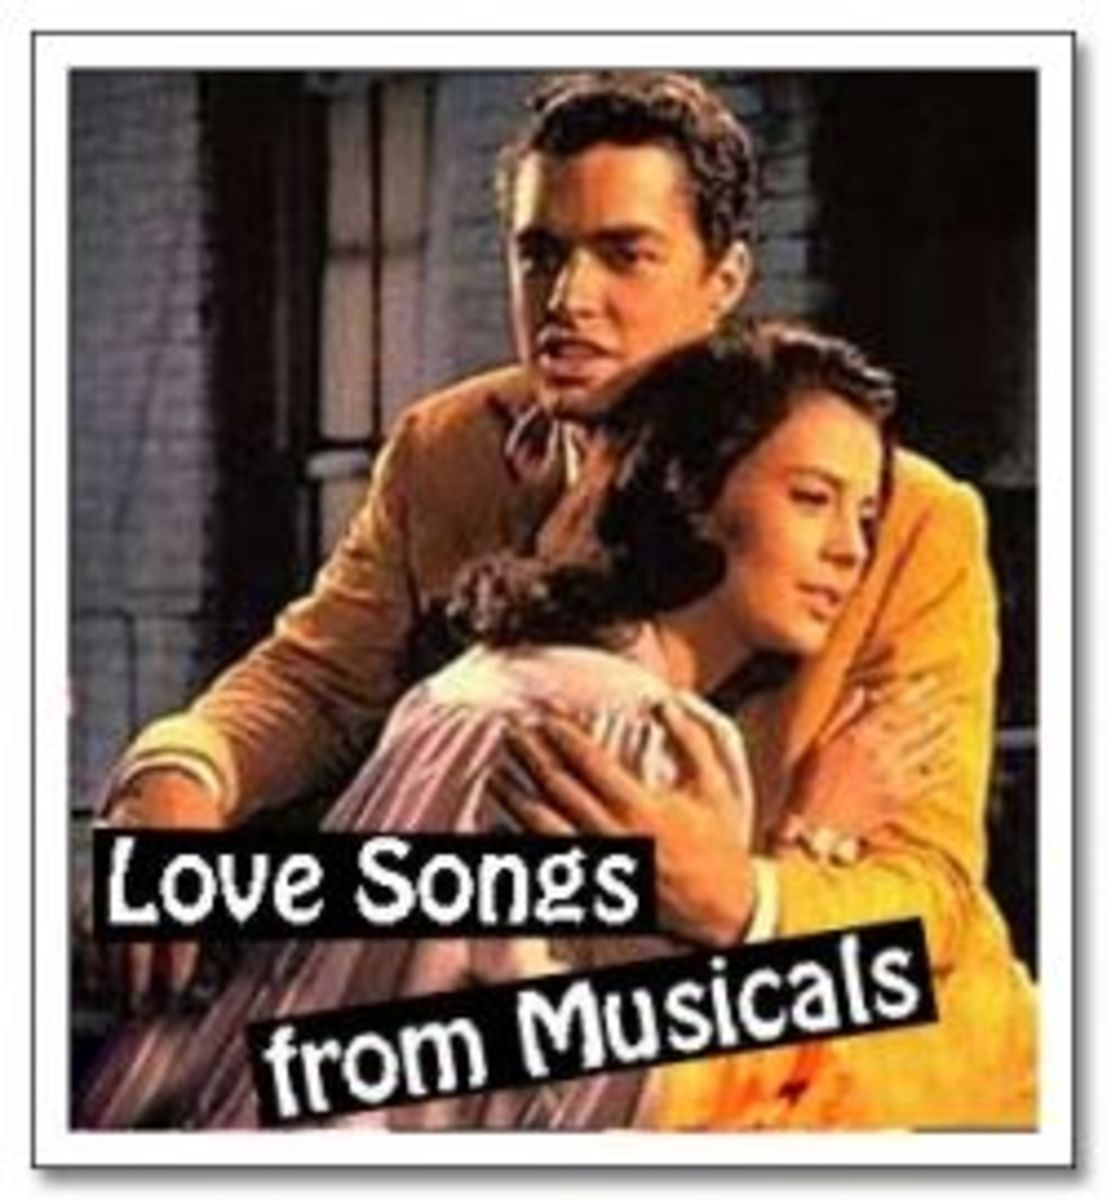 Love Songs From Musicals for Your Wedding